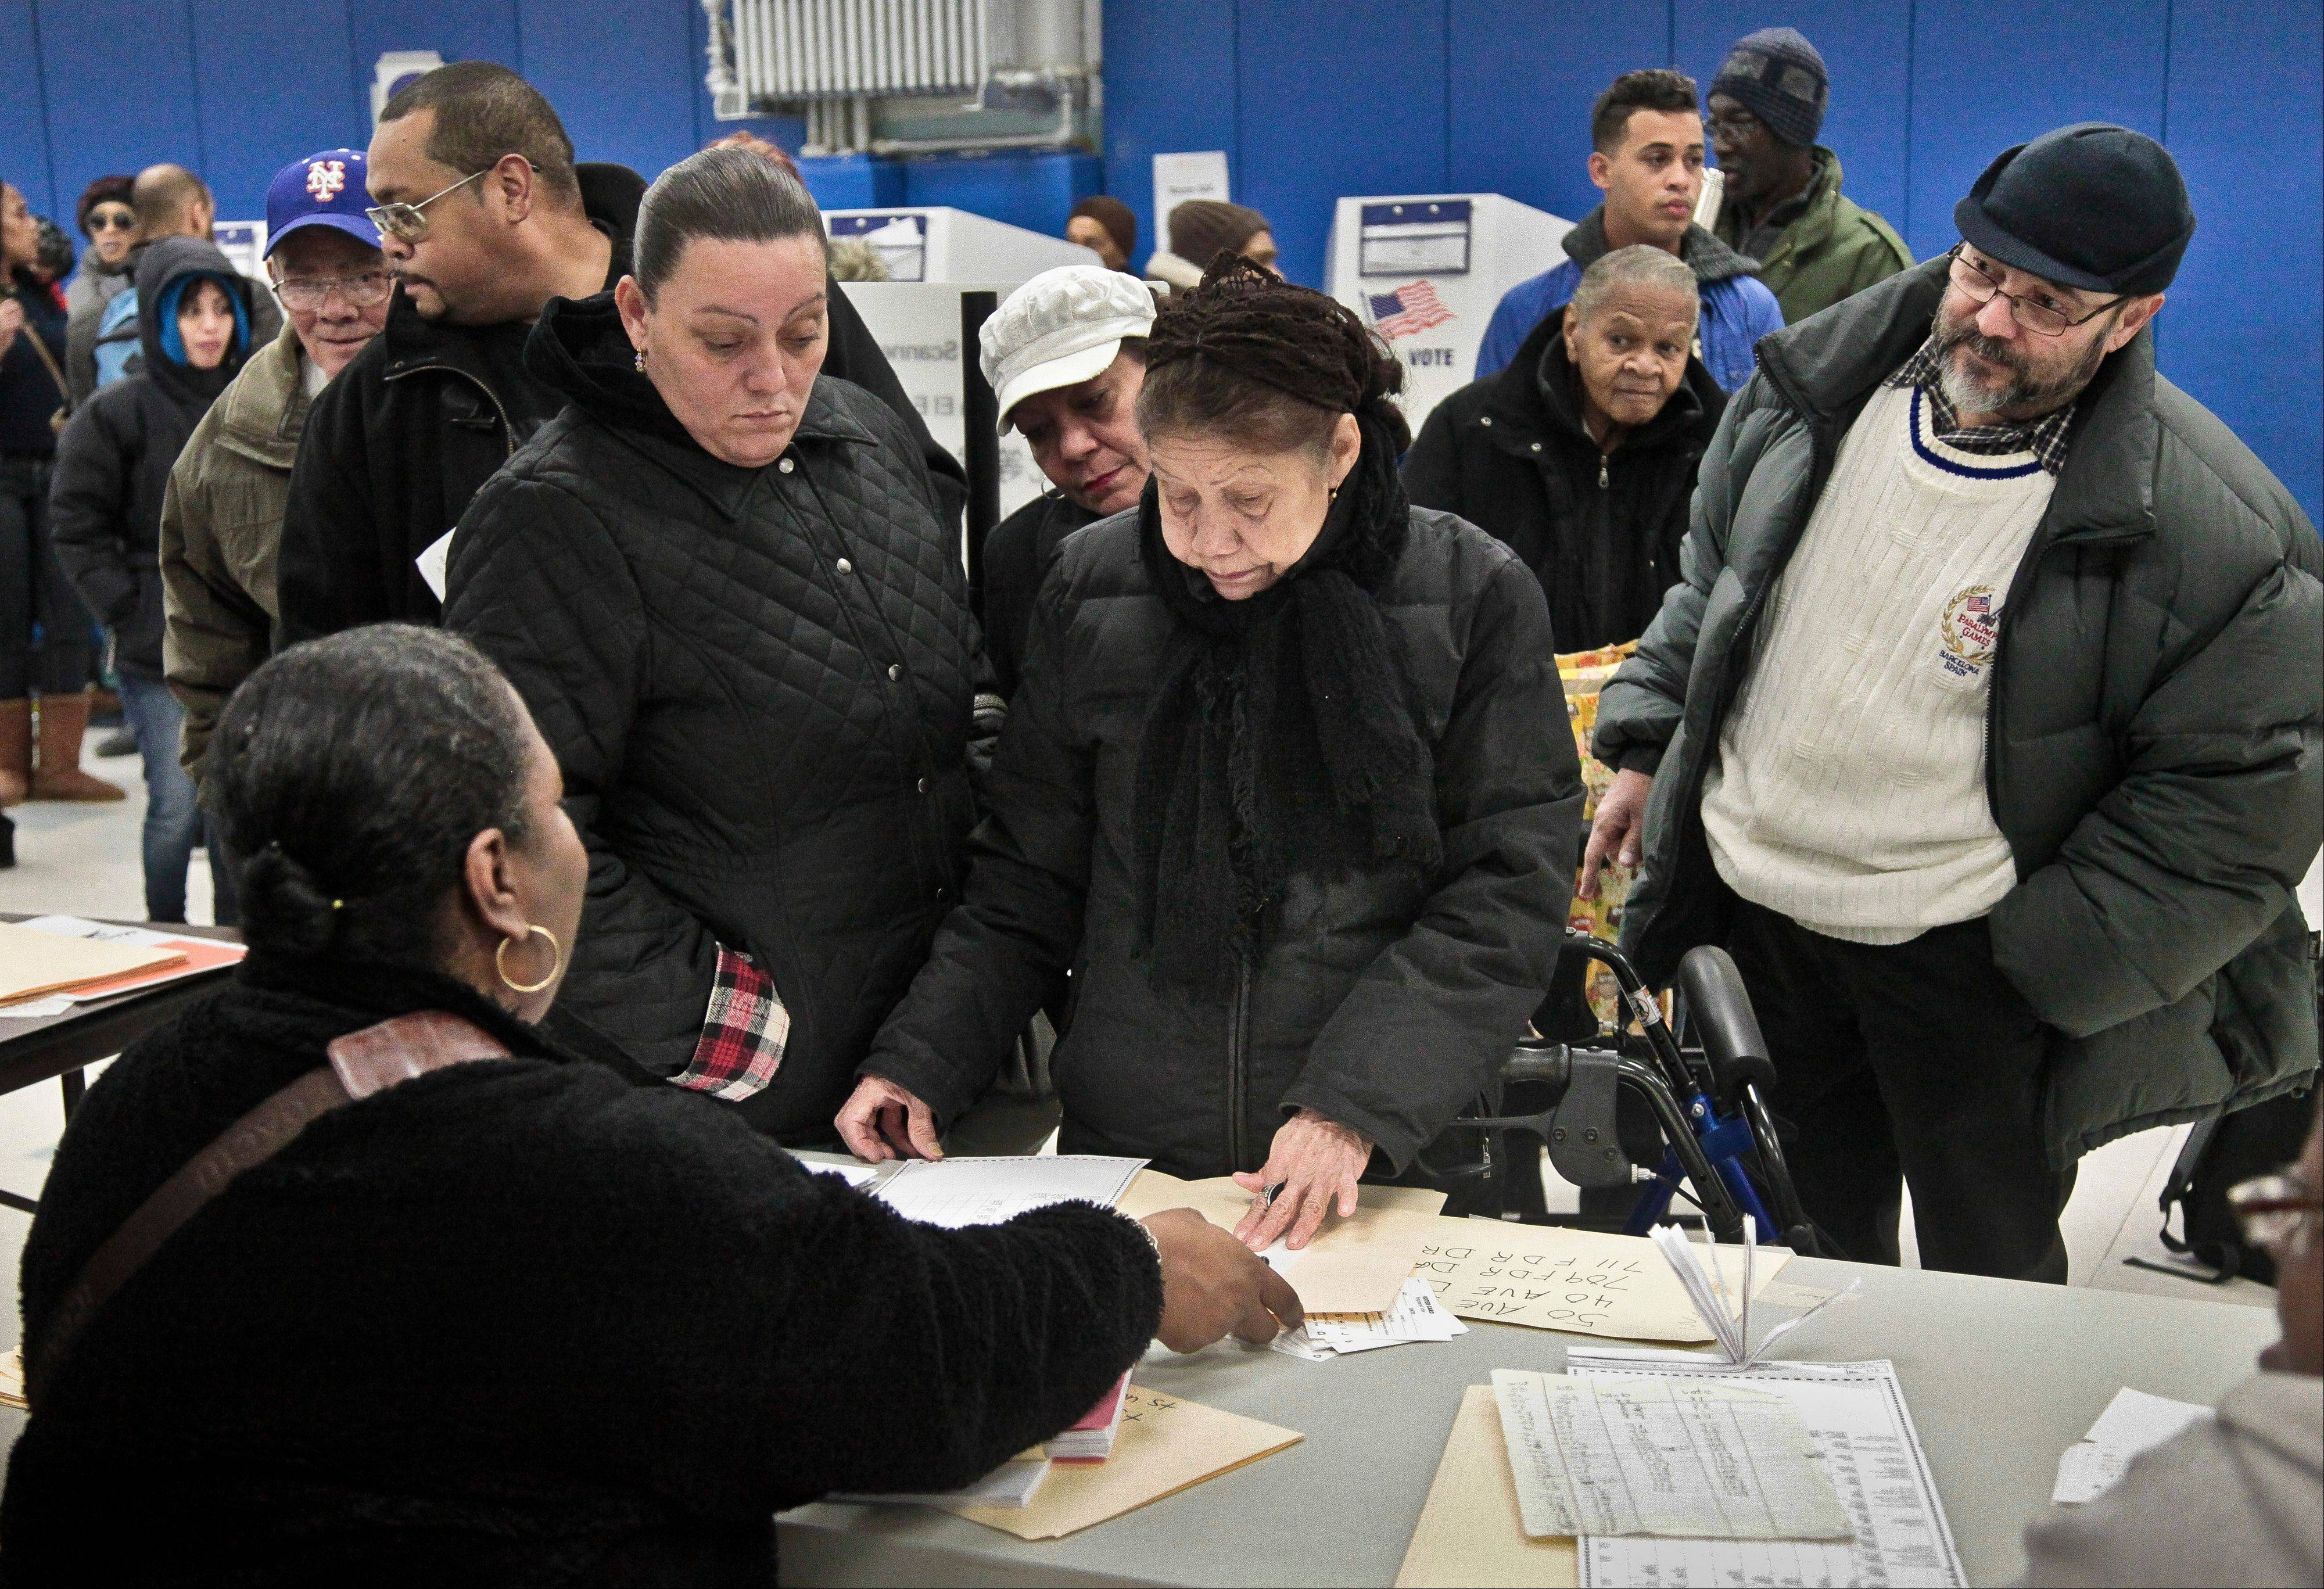 A poll worker, seated left, gives instructions to voters arriving from a relocated polling site that closed after flooding from Superstorm Sandy, on Tuesday, Nov. 6, 2012 at P.S. 188 on Manhattan's Lower East Side, New York.